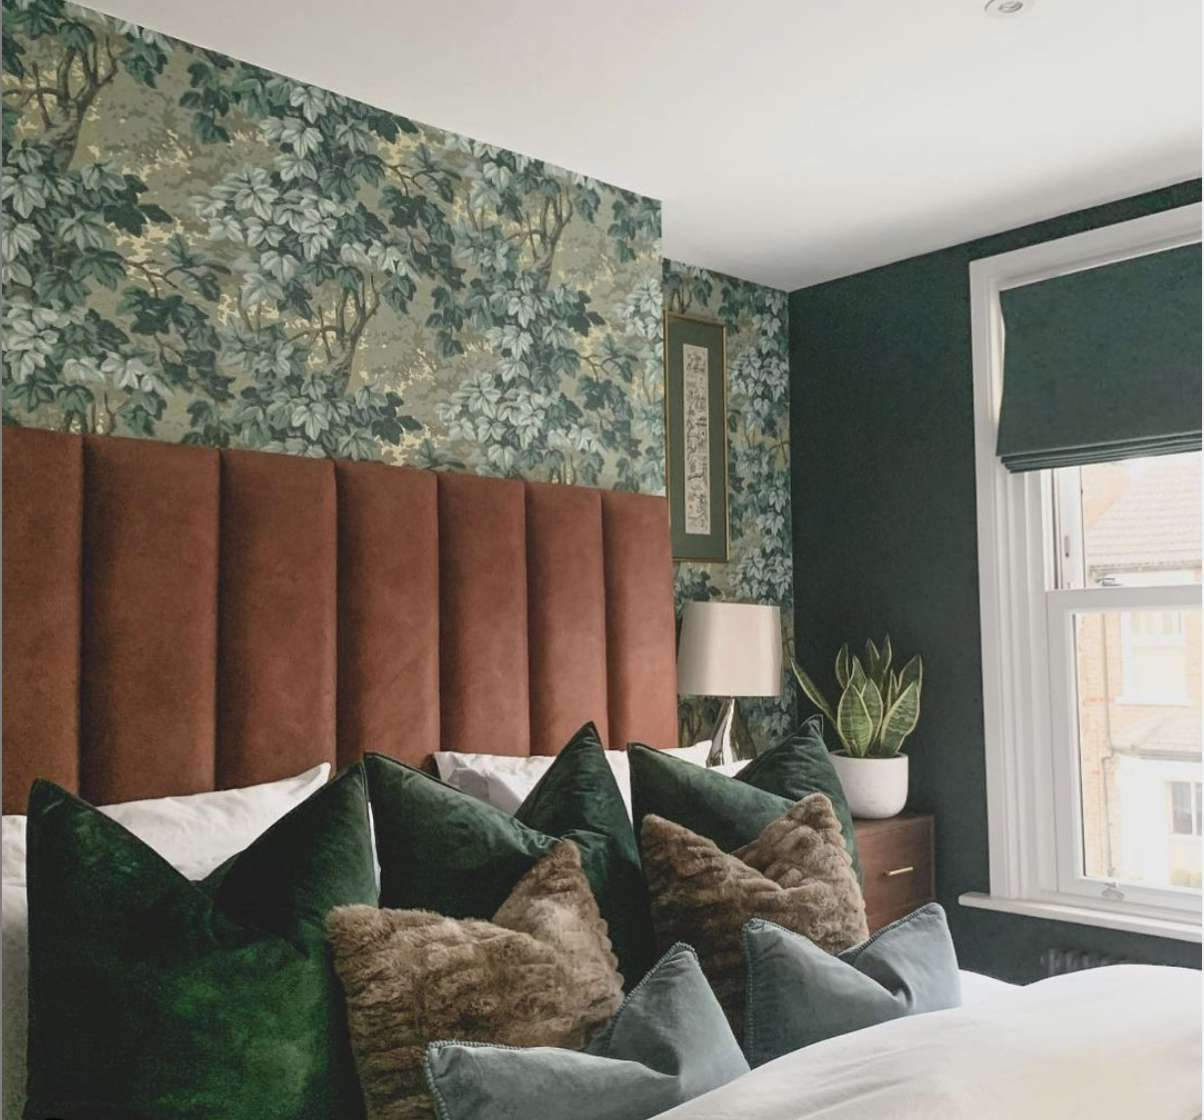 bedroom with burnt orange-red cushion headboard, floral green-ish blue wallpaper, green and blue throw pillows on bed, snake plant in corner